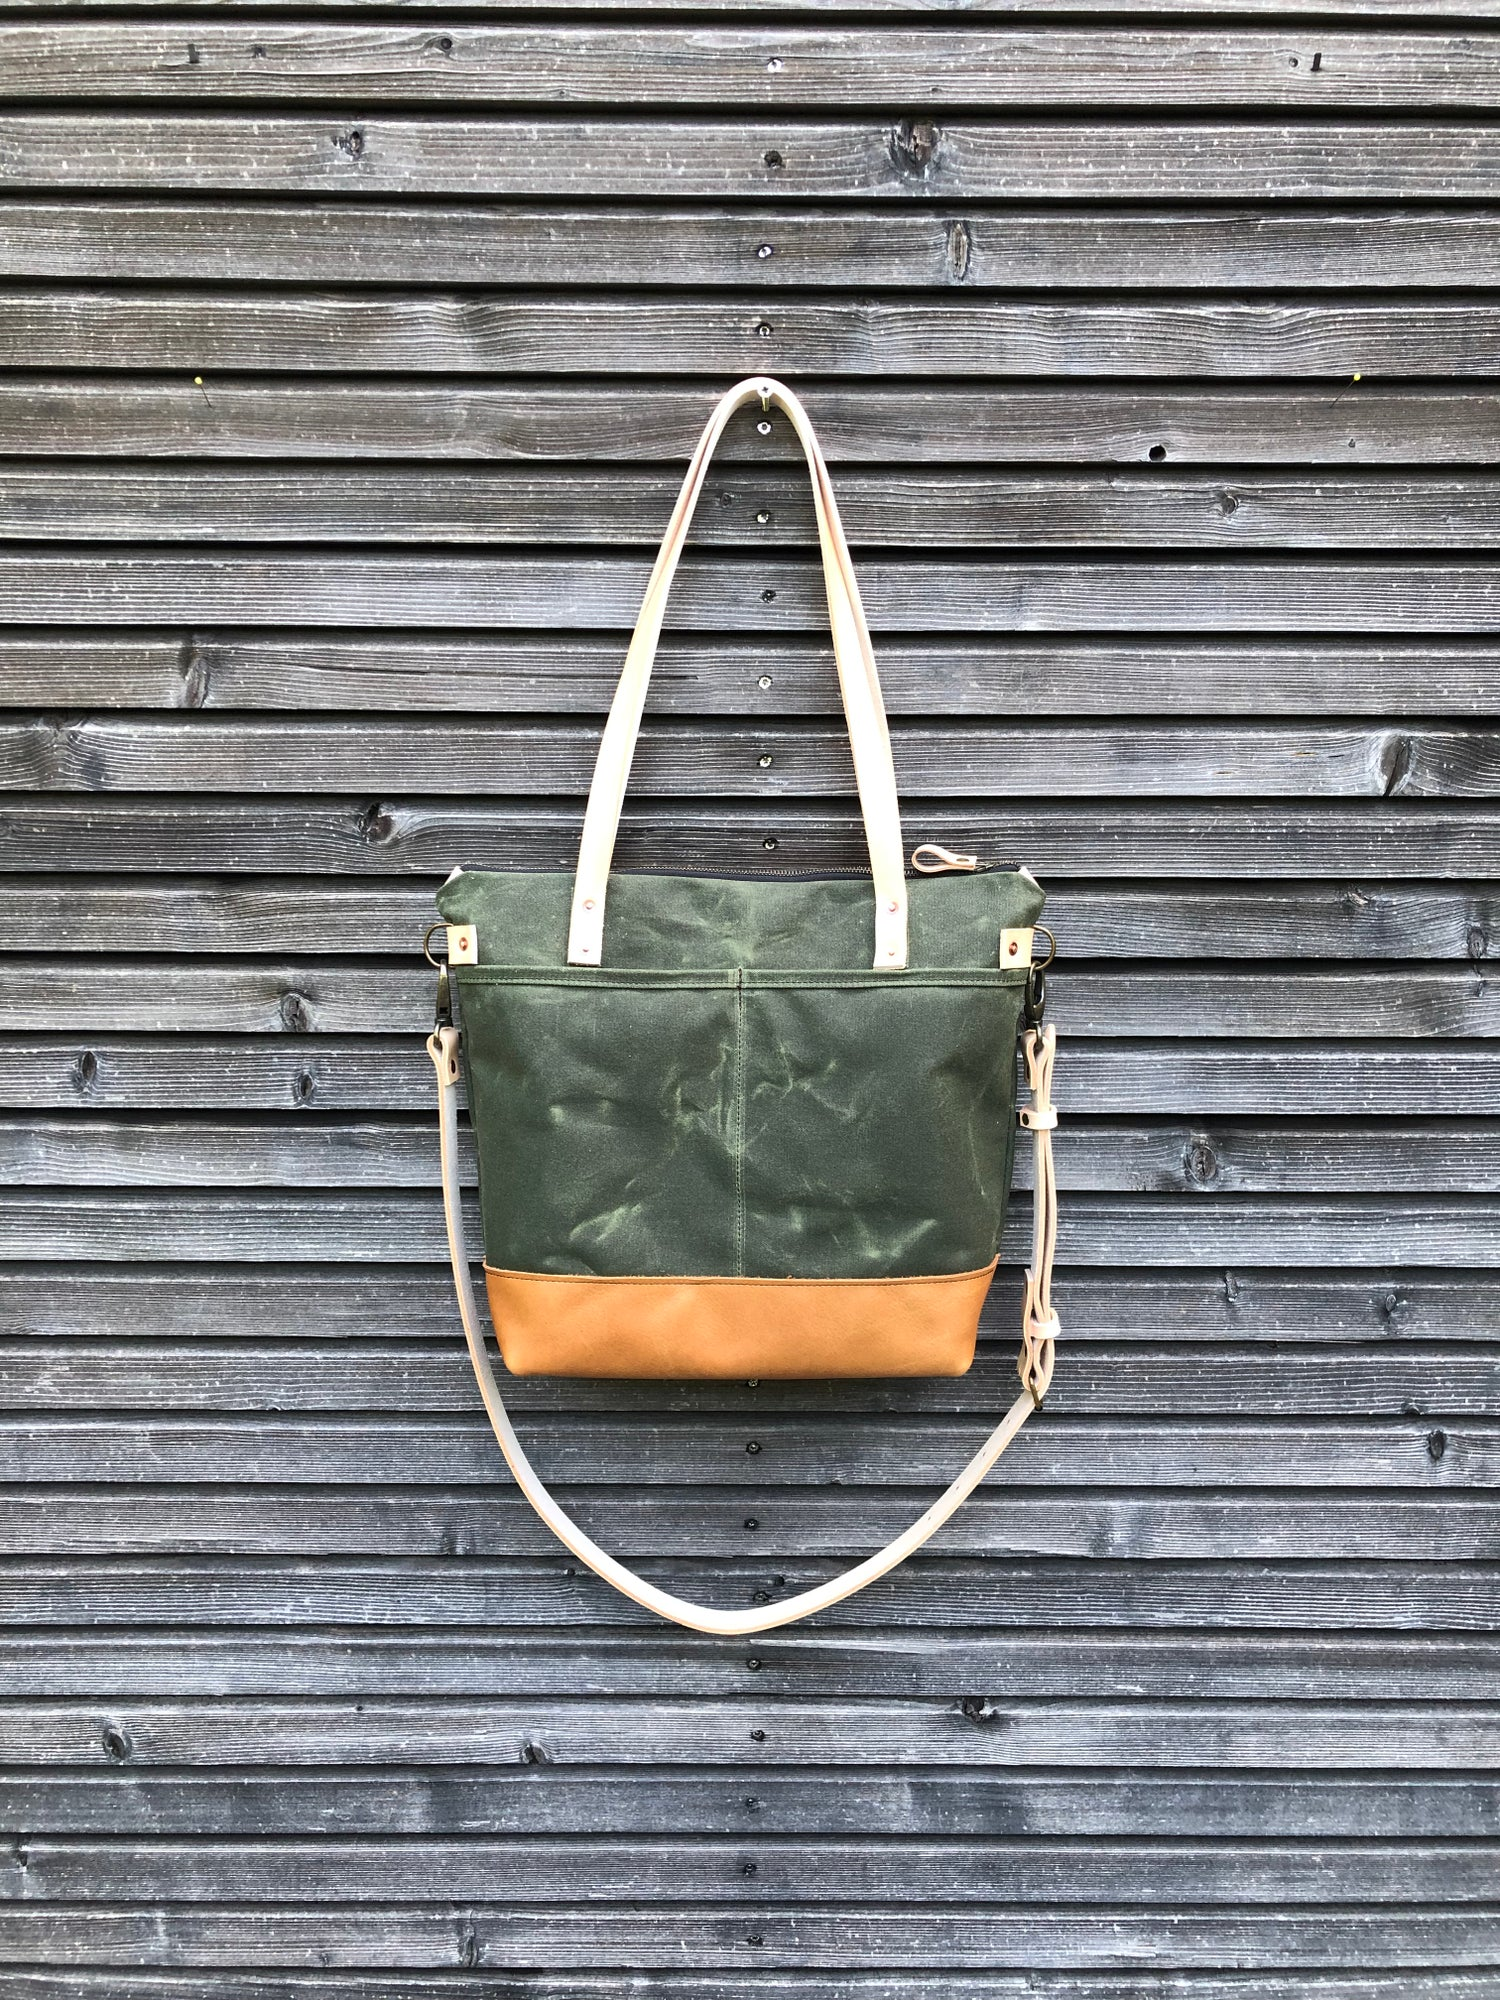 Image of Olive green waxed canvas tote bag / office bag with leather handles and shoulder strap